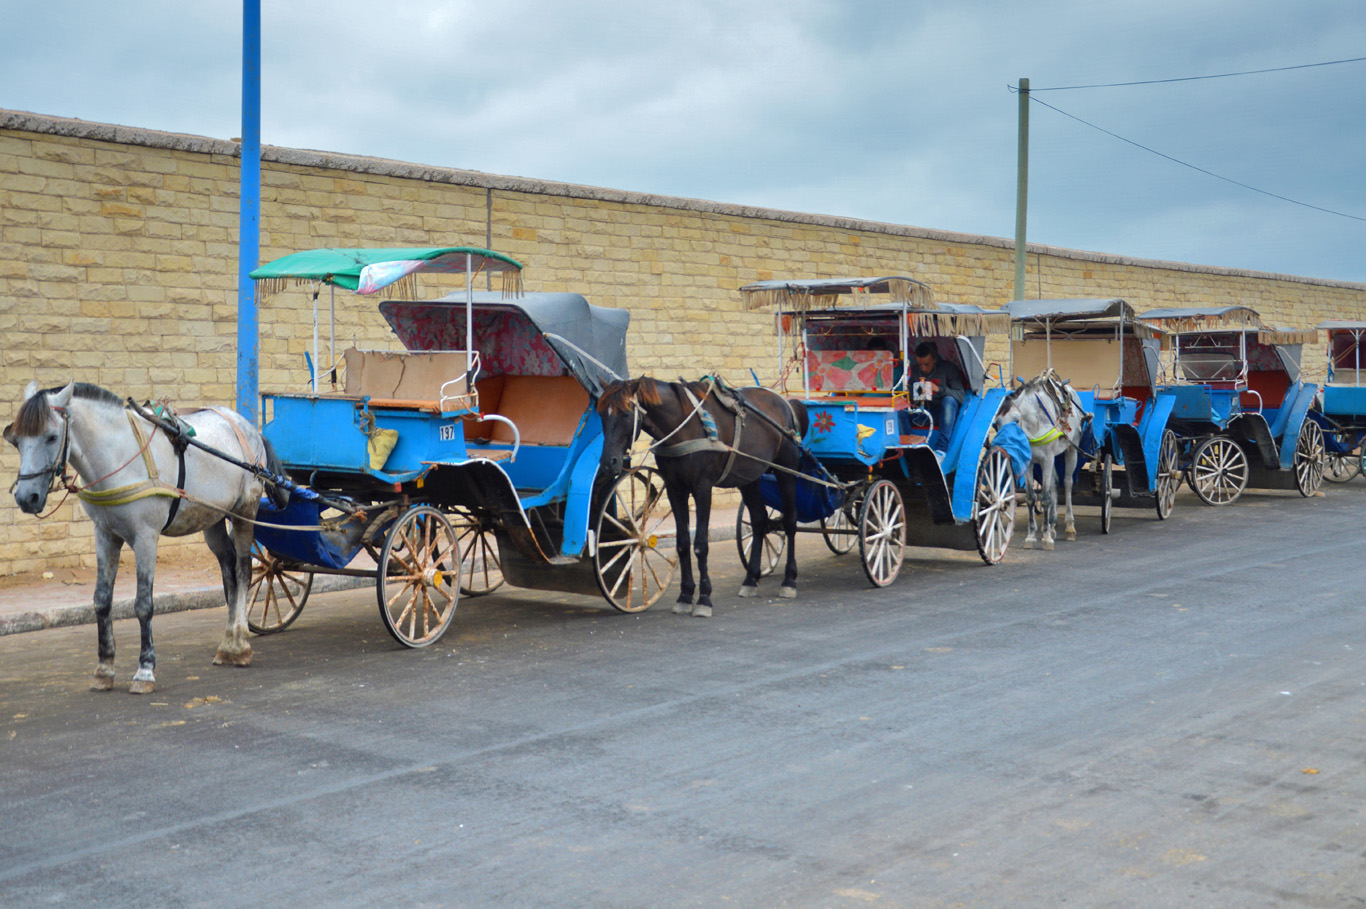 Horse taxis